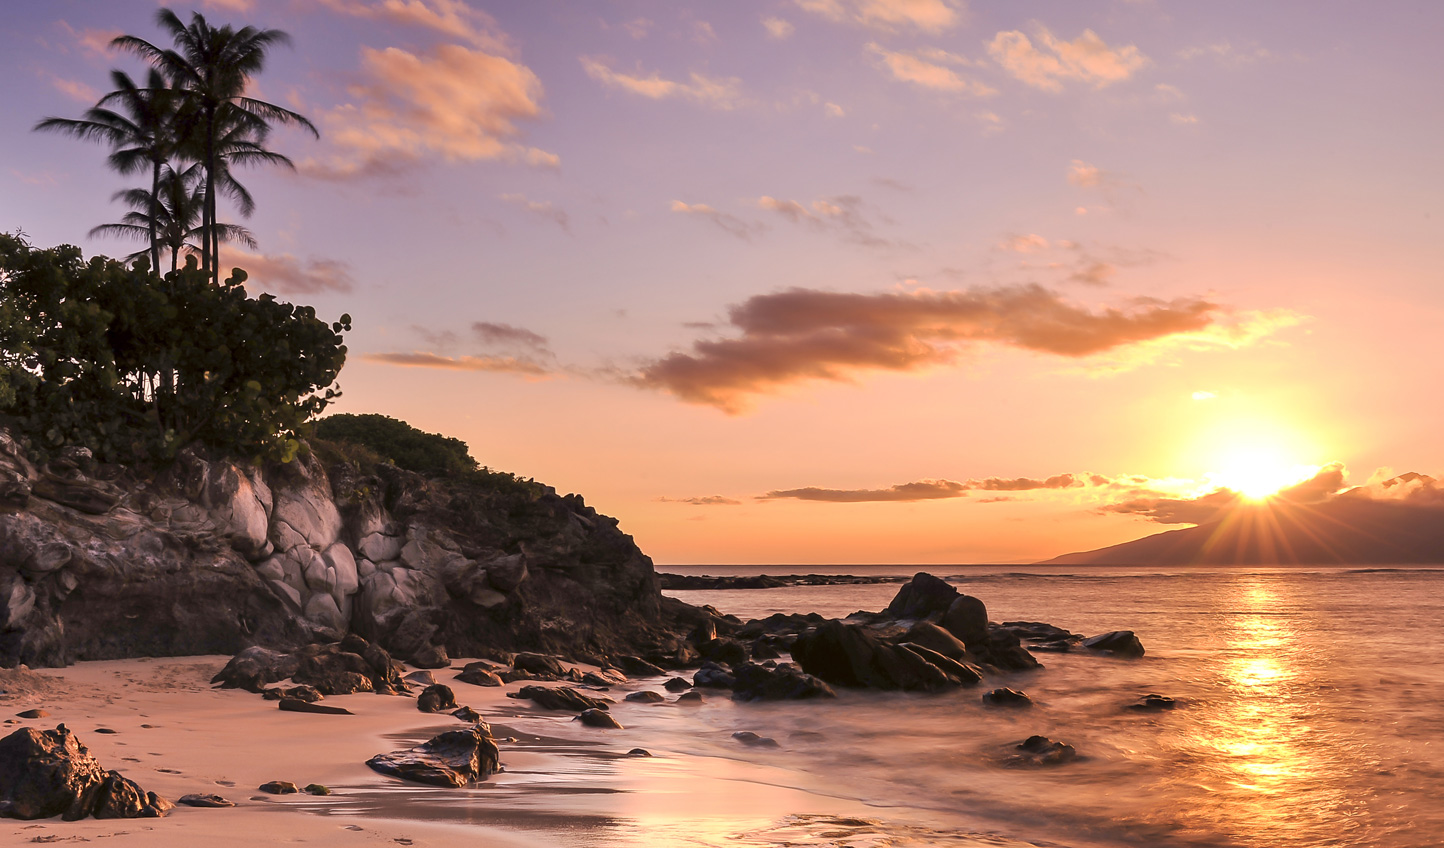 Find a quiet corner of Maui and watch the sunset light up the sky